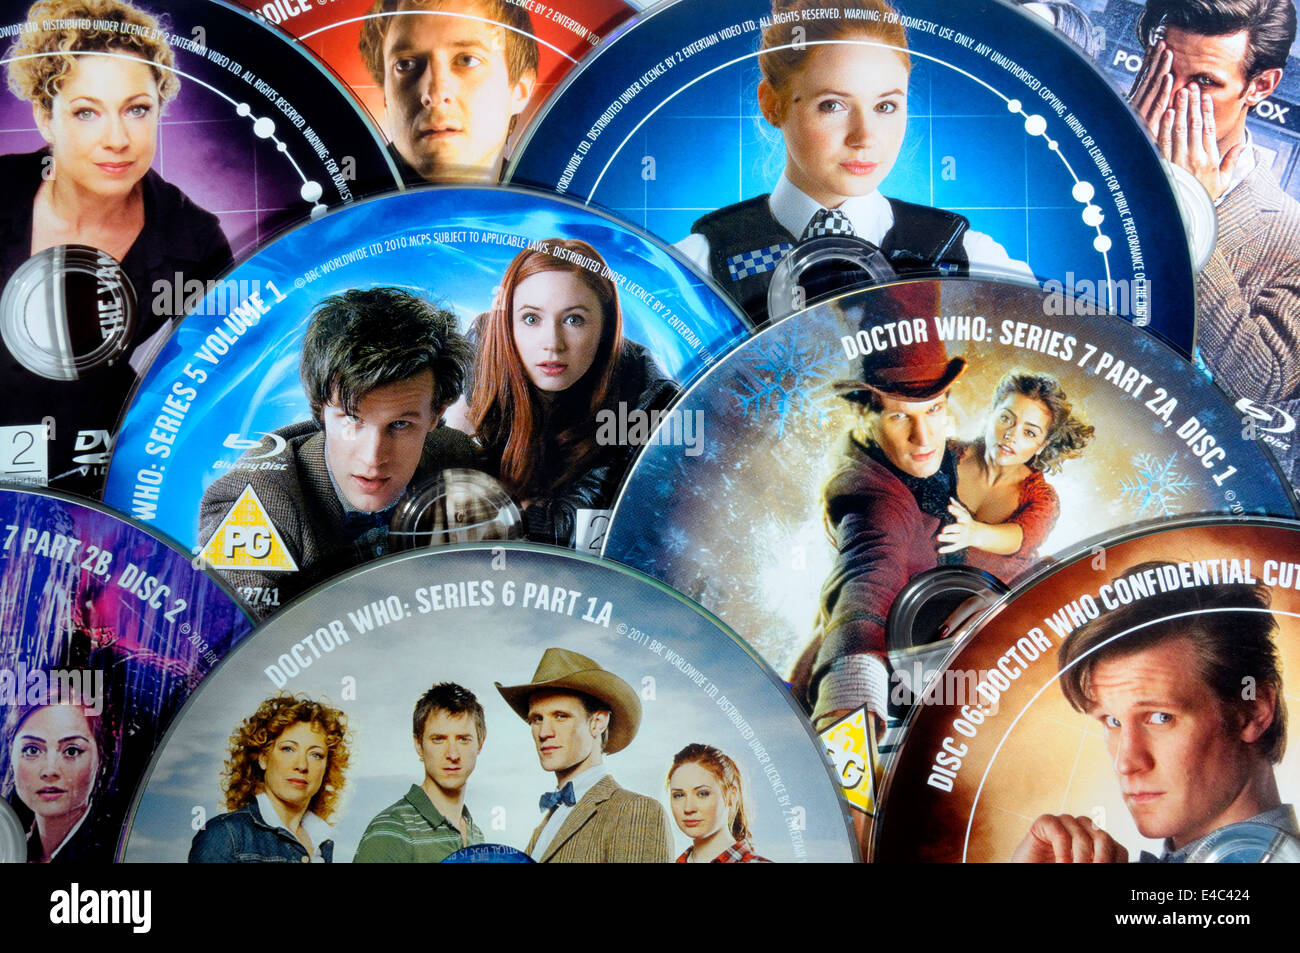 Dr Who DVDs - Stock Image